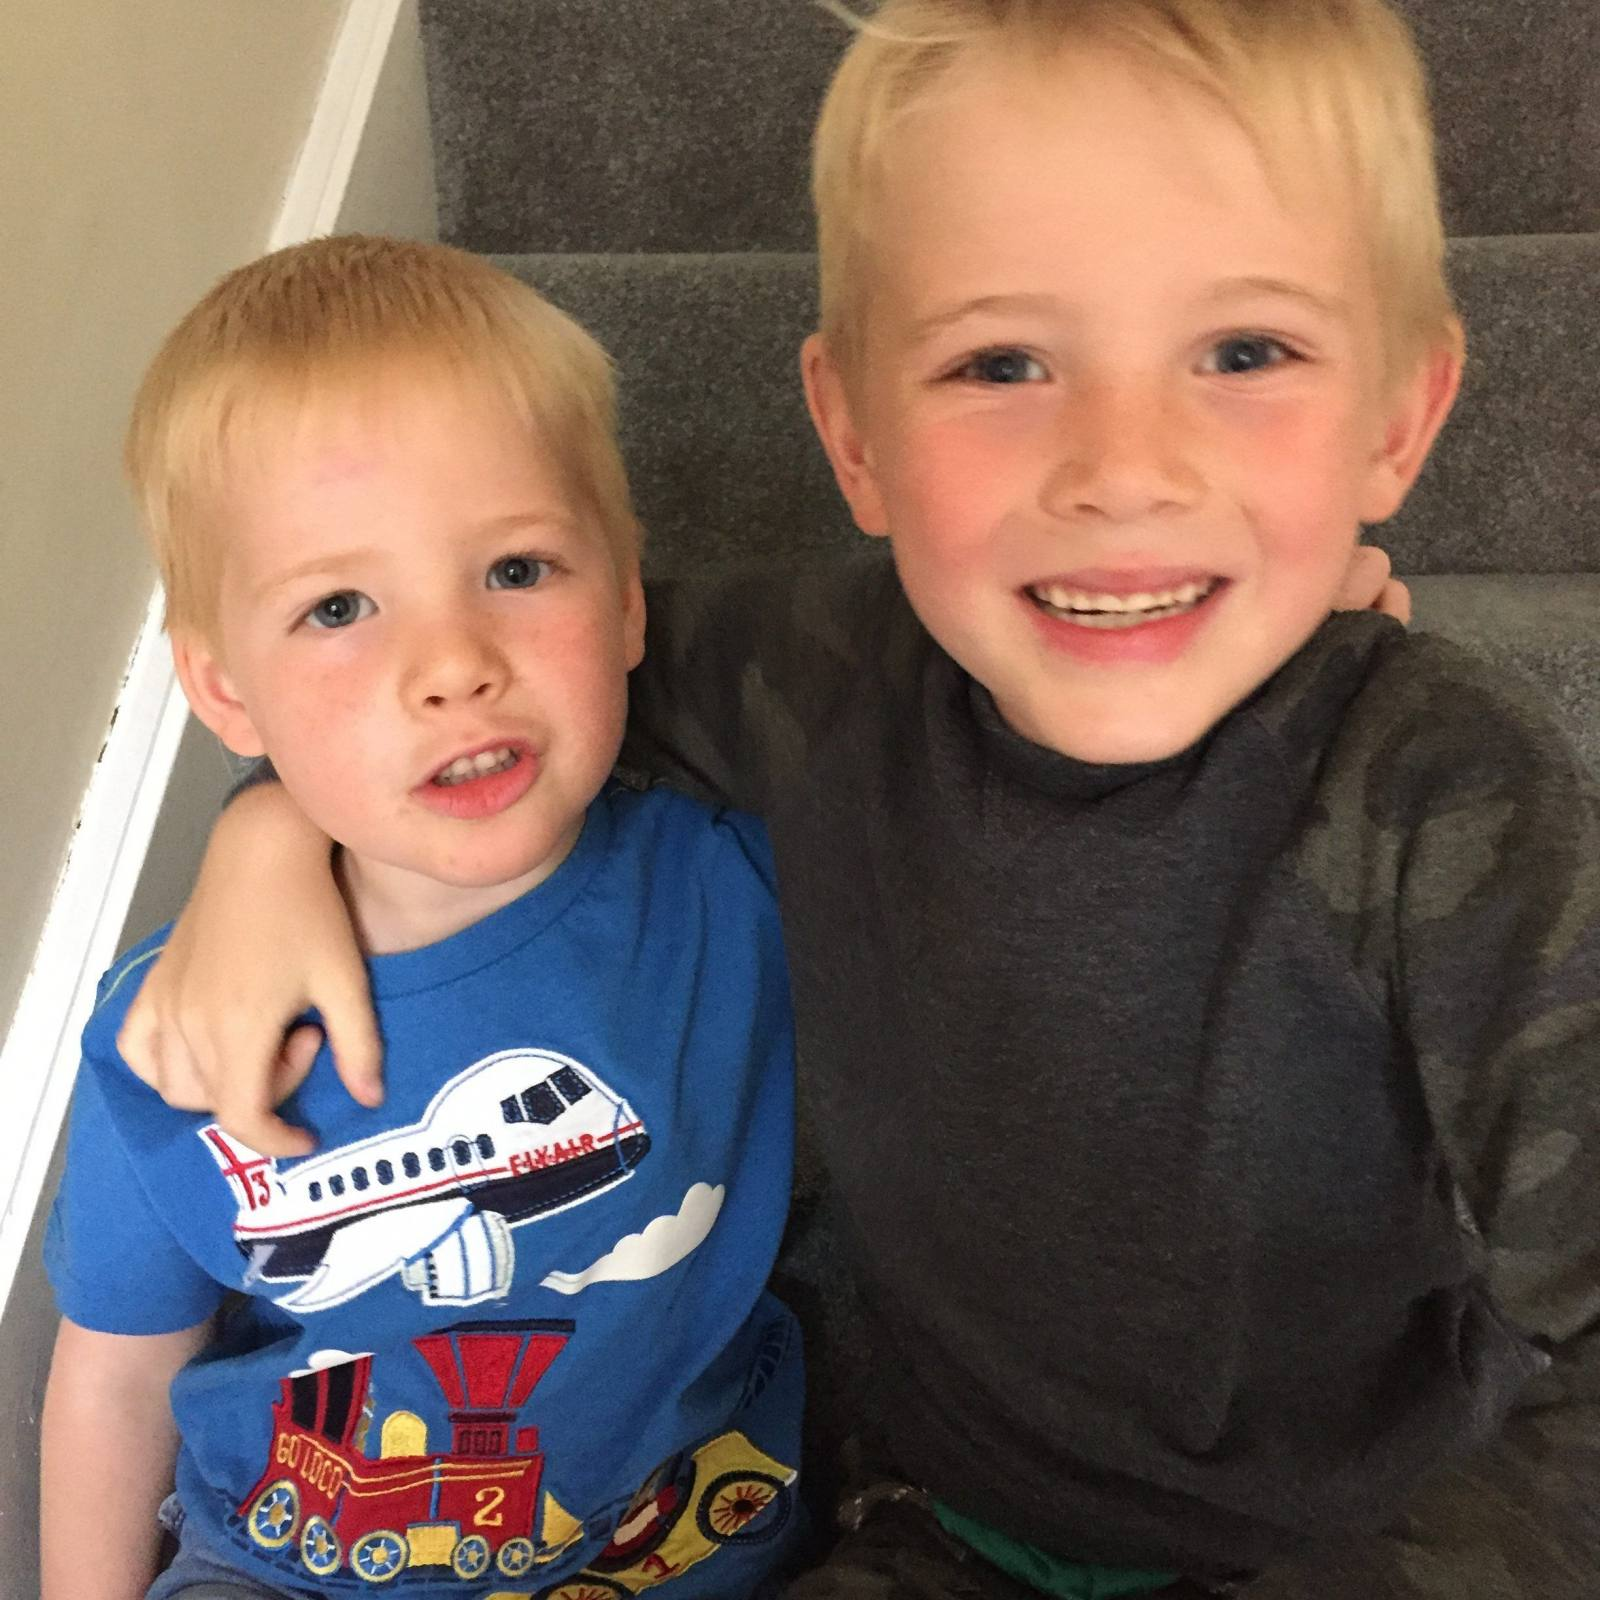 Why I share photos of my boys on Social Media